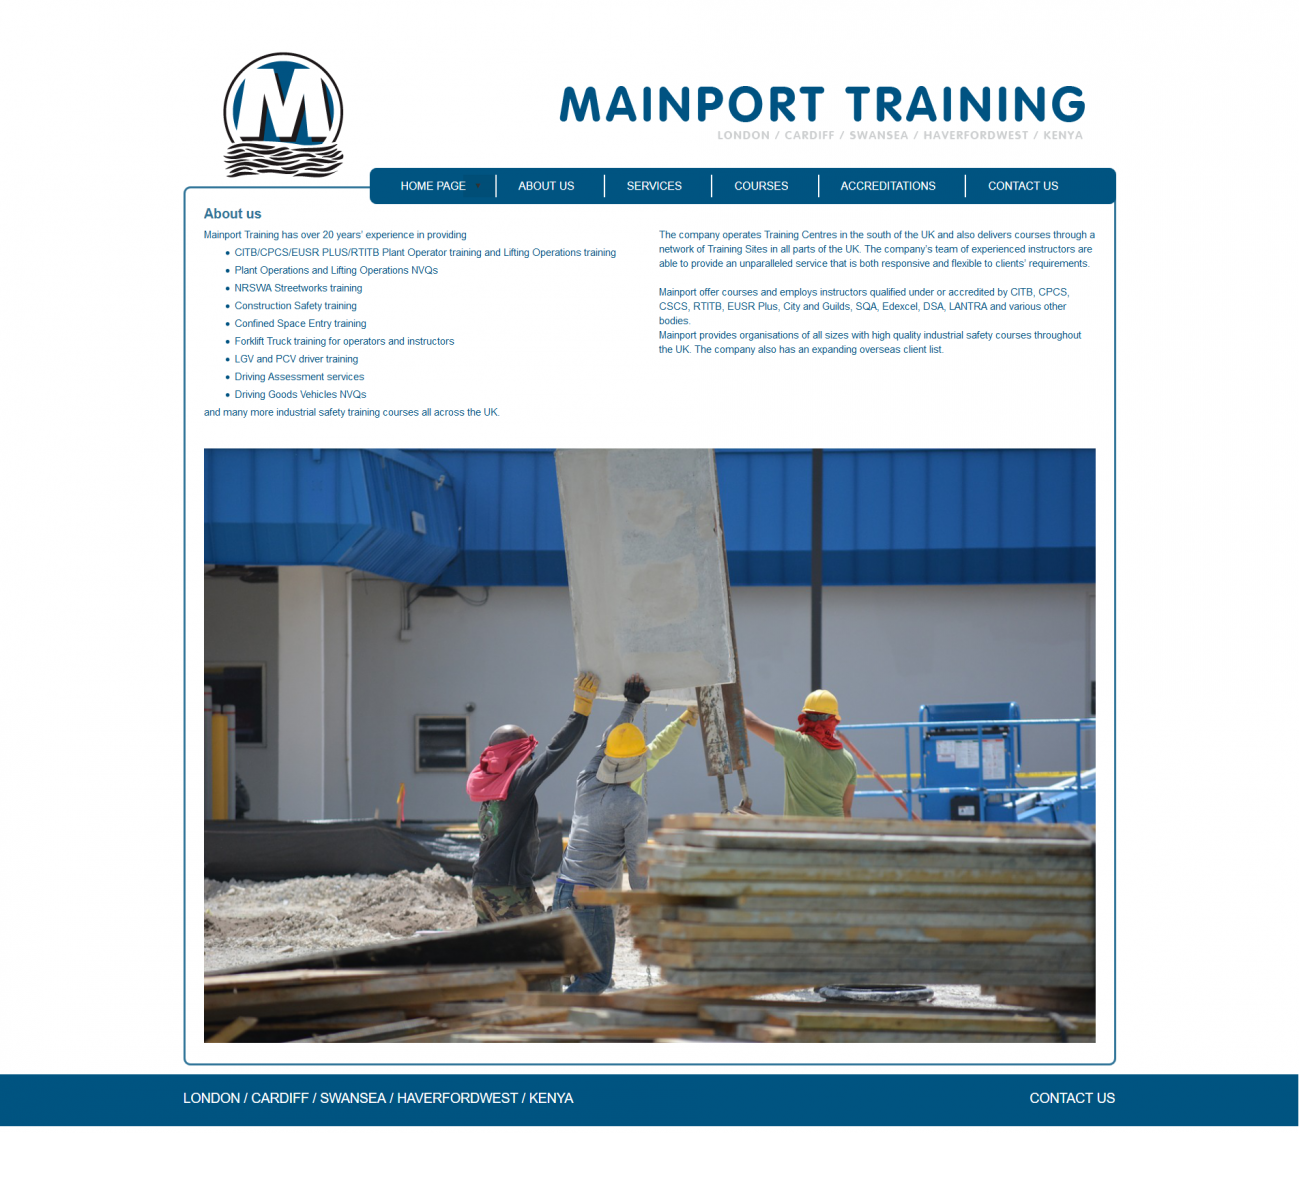 An image from Mainport Training